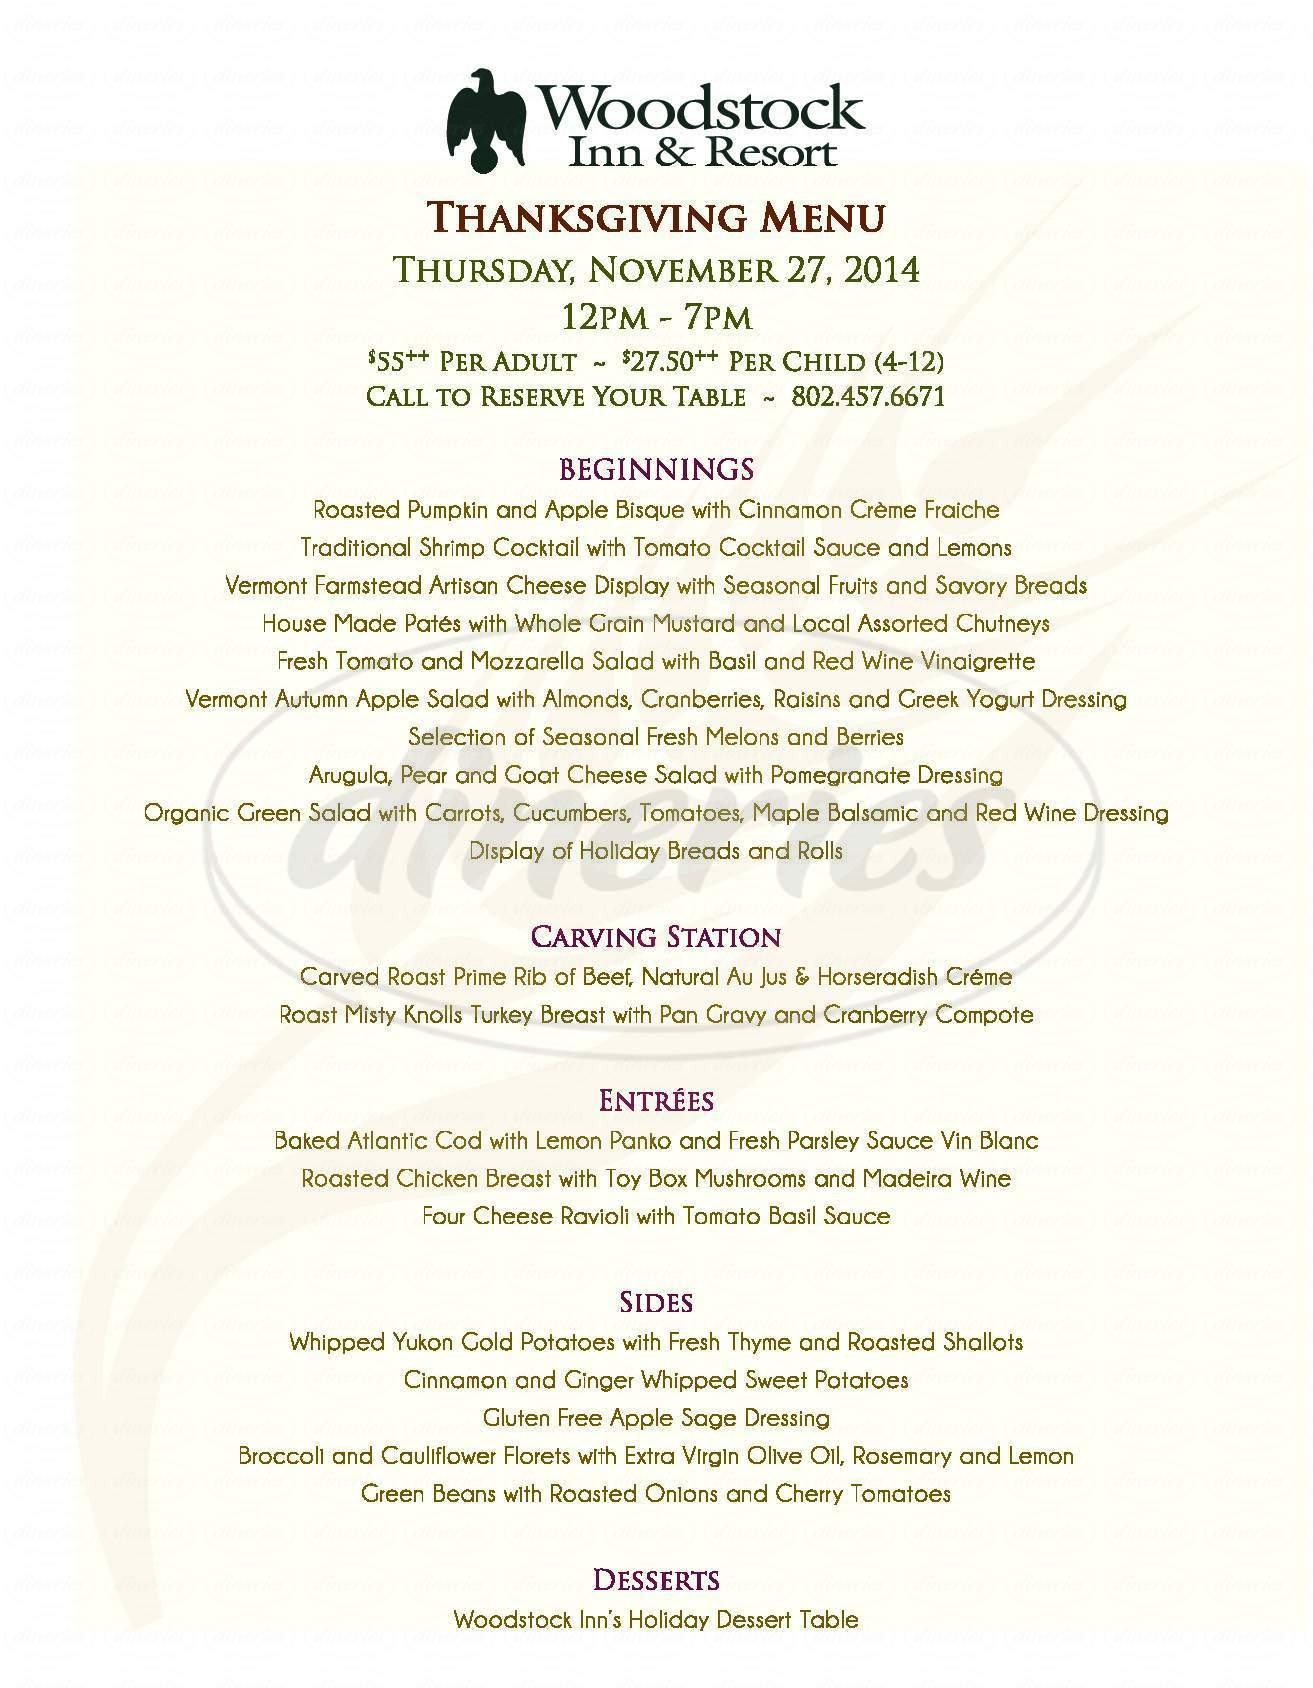 menu for Woodstock Inn & Resort